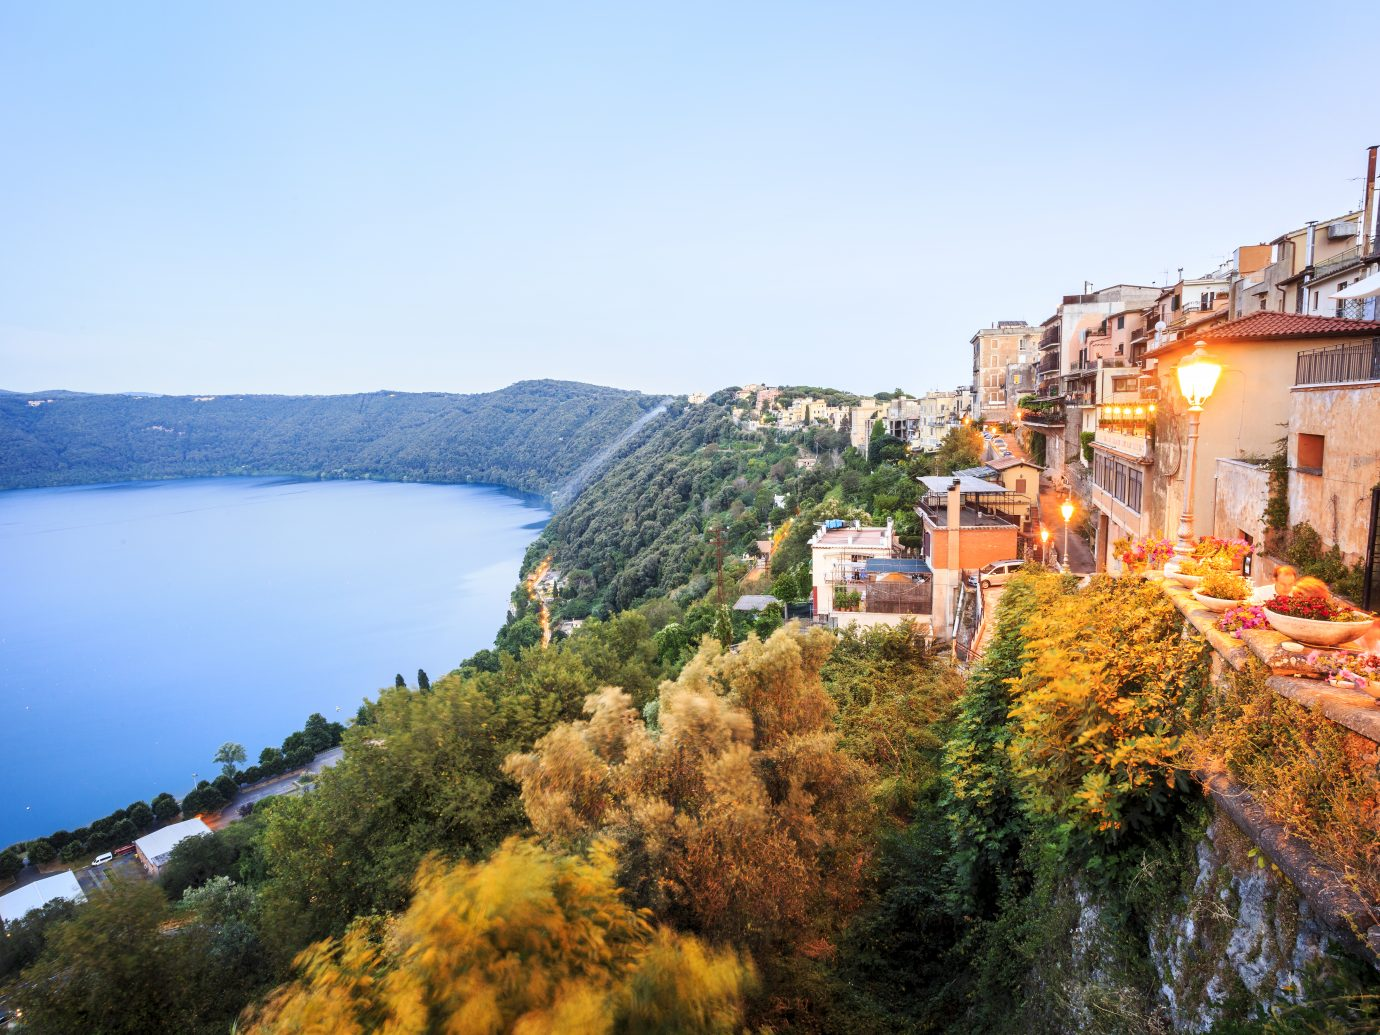 Albano Lake shore and city of Castel Gandolfo, Lazio, Italy